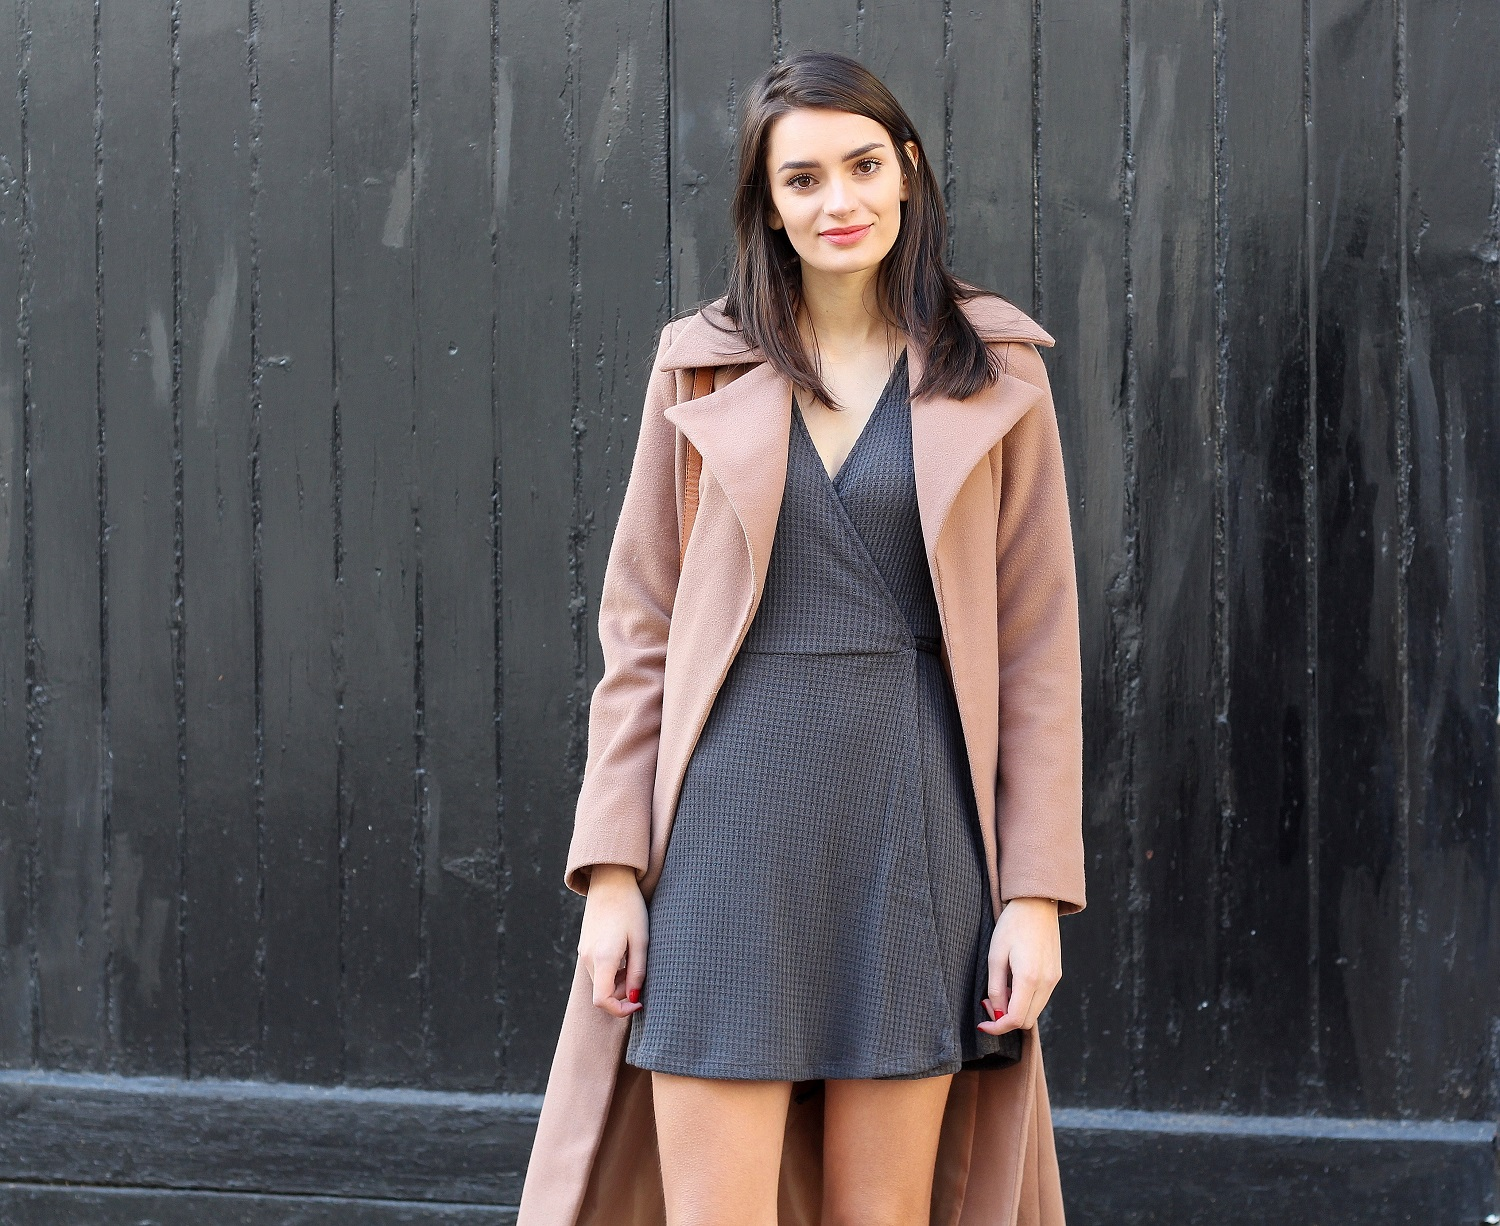 peexo fashion blogger wearing camel coat and wrap dress